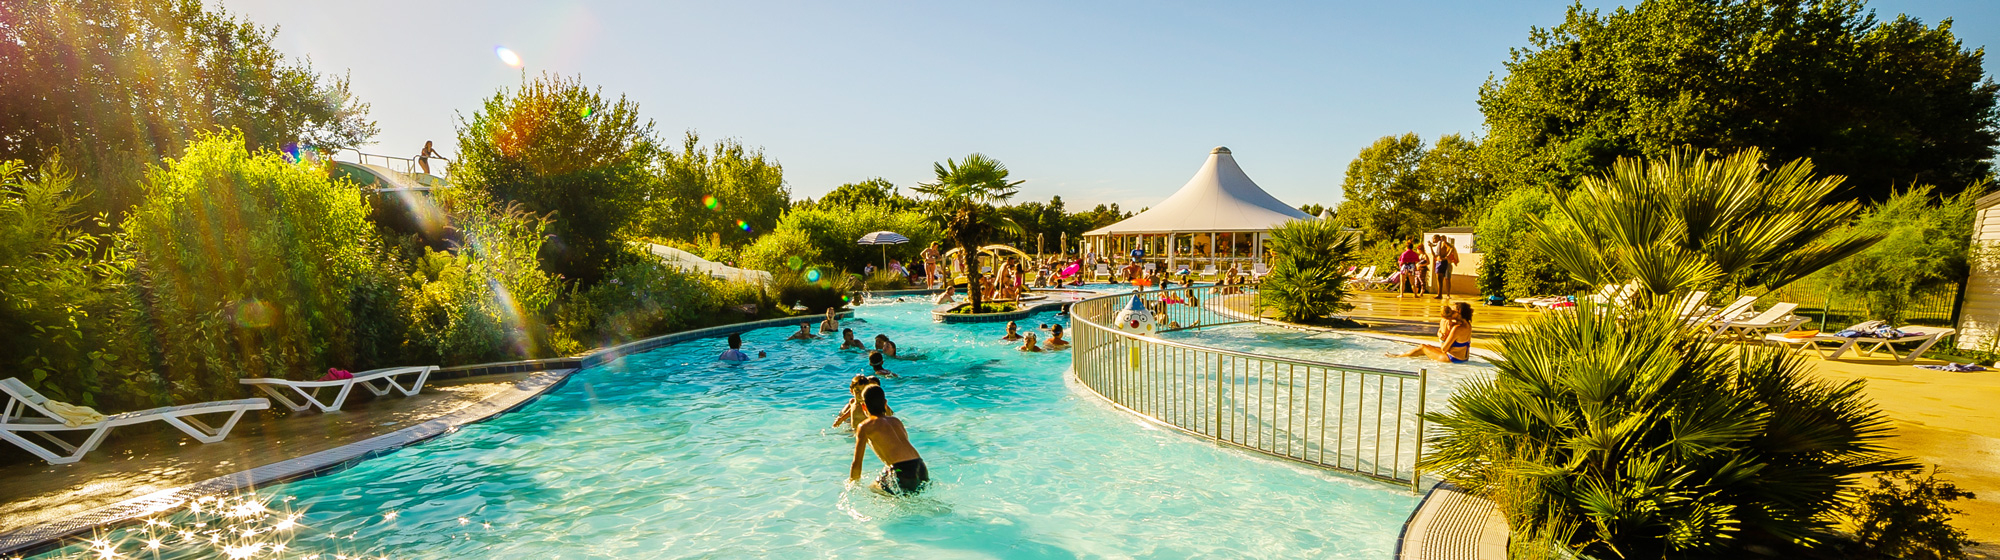 Camping Normandie Piscine Couverte   Camping Le Fanal 4 ... serapportantà Camping Piscine Normandie